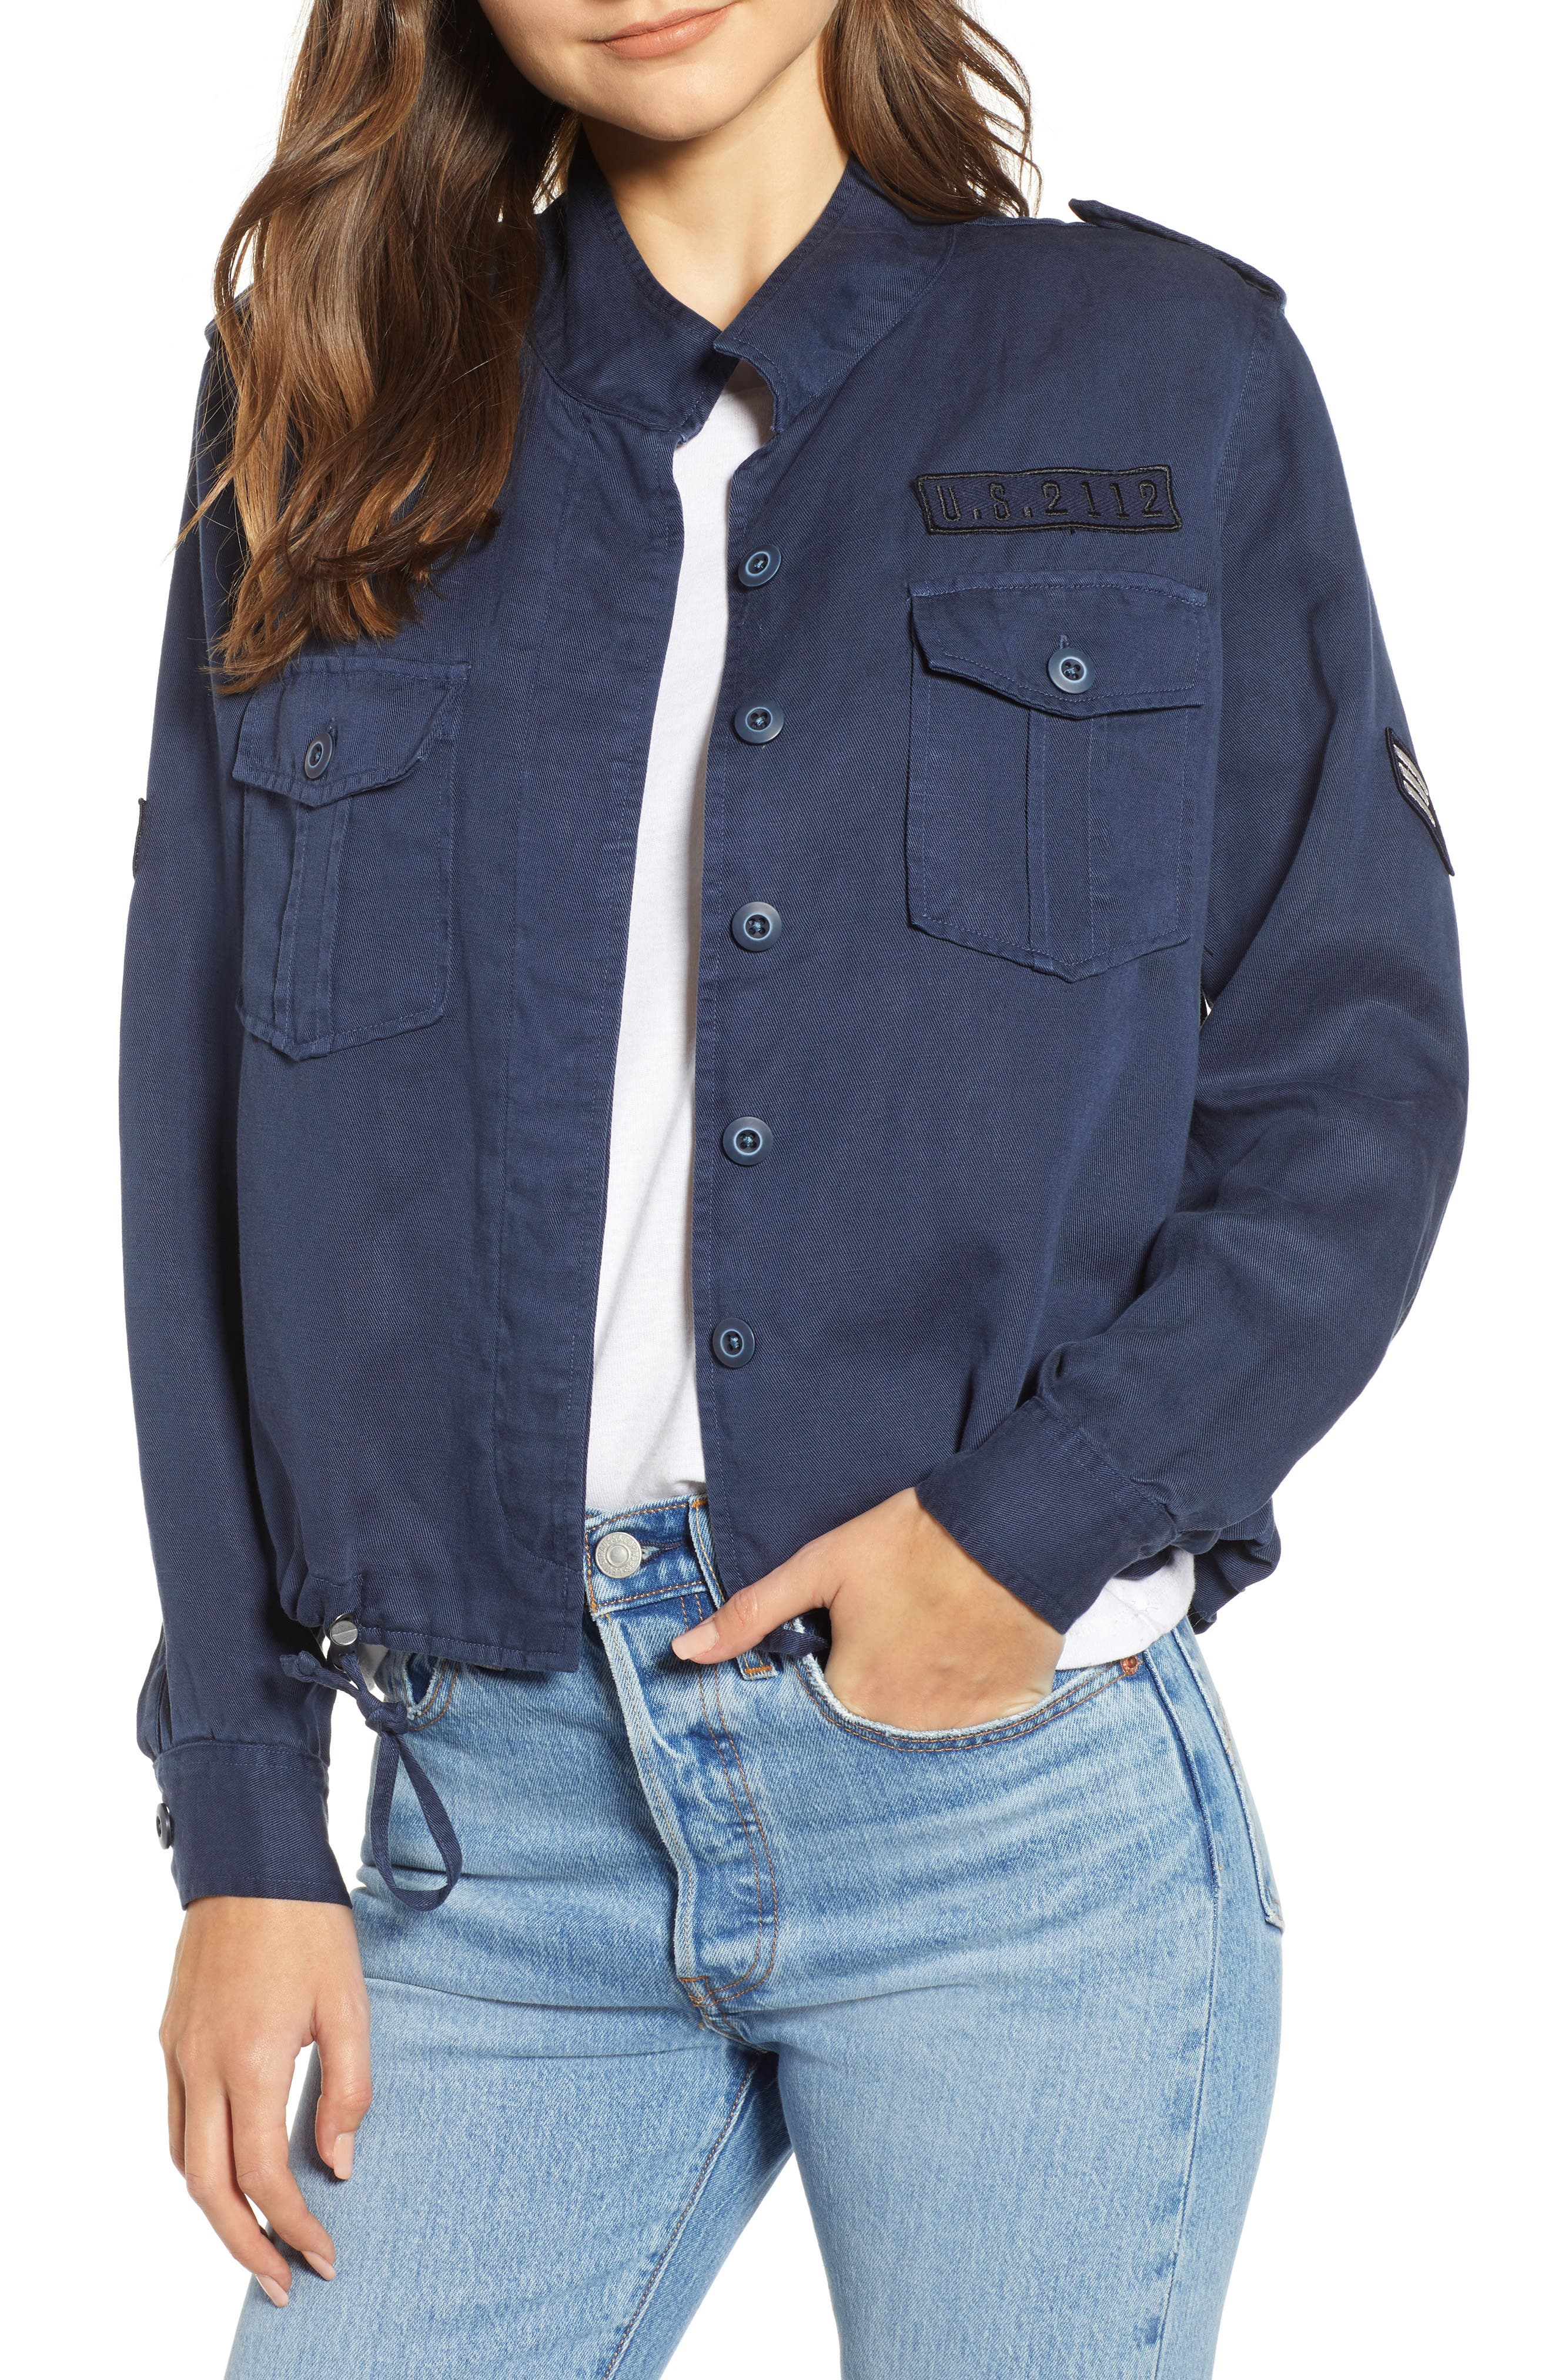 Grant Star-Print Button-Front Military Jacket in Indigo